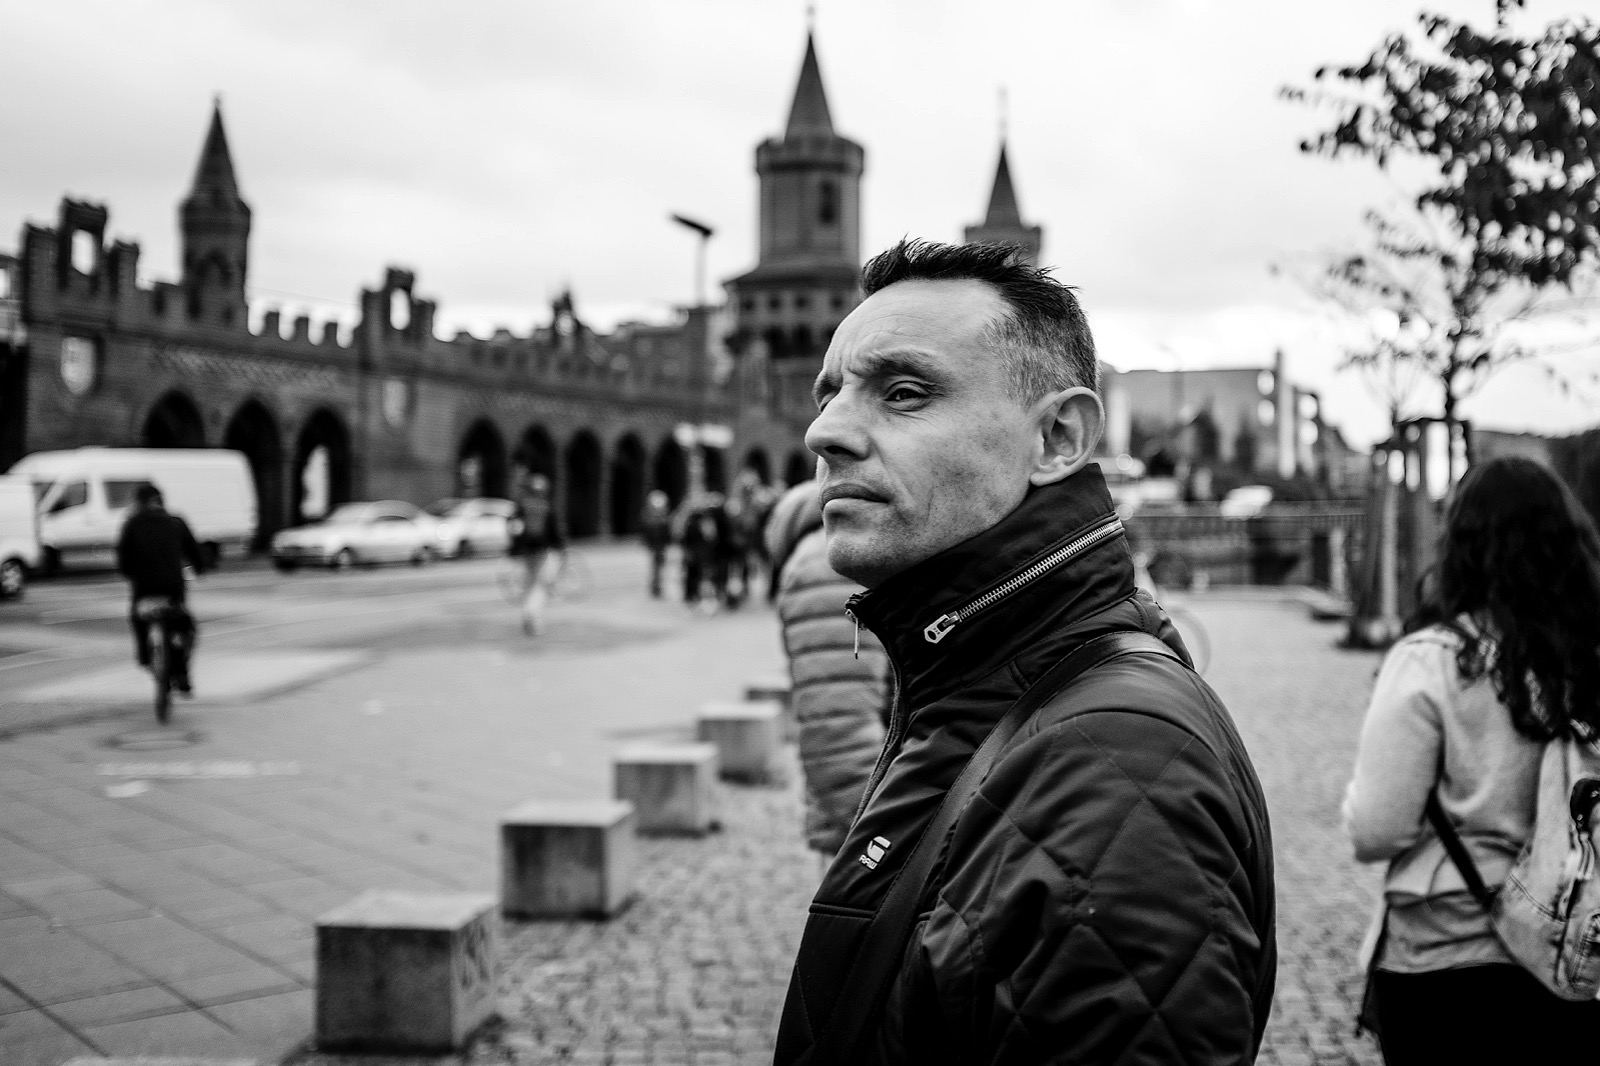 Berlin Street Photography - Oh Brother | Video Production